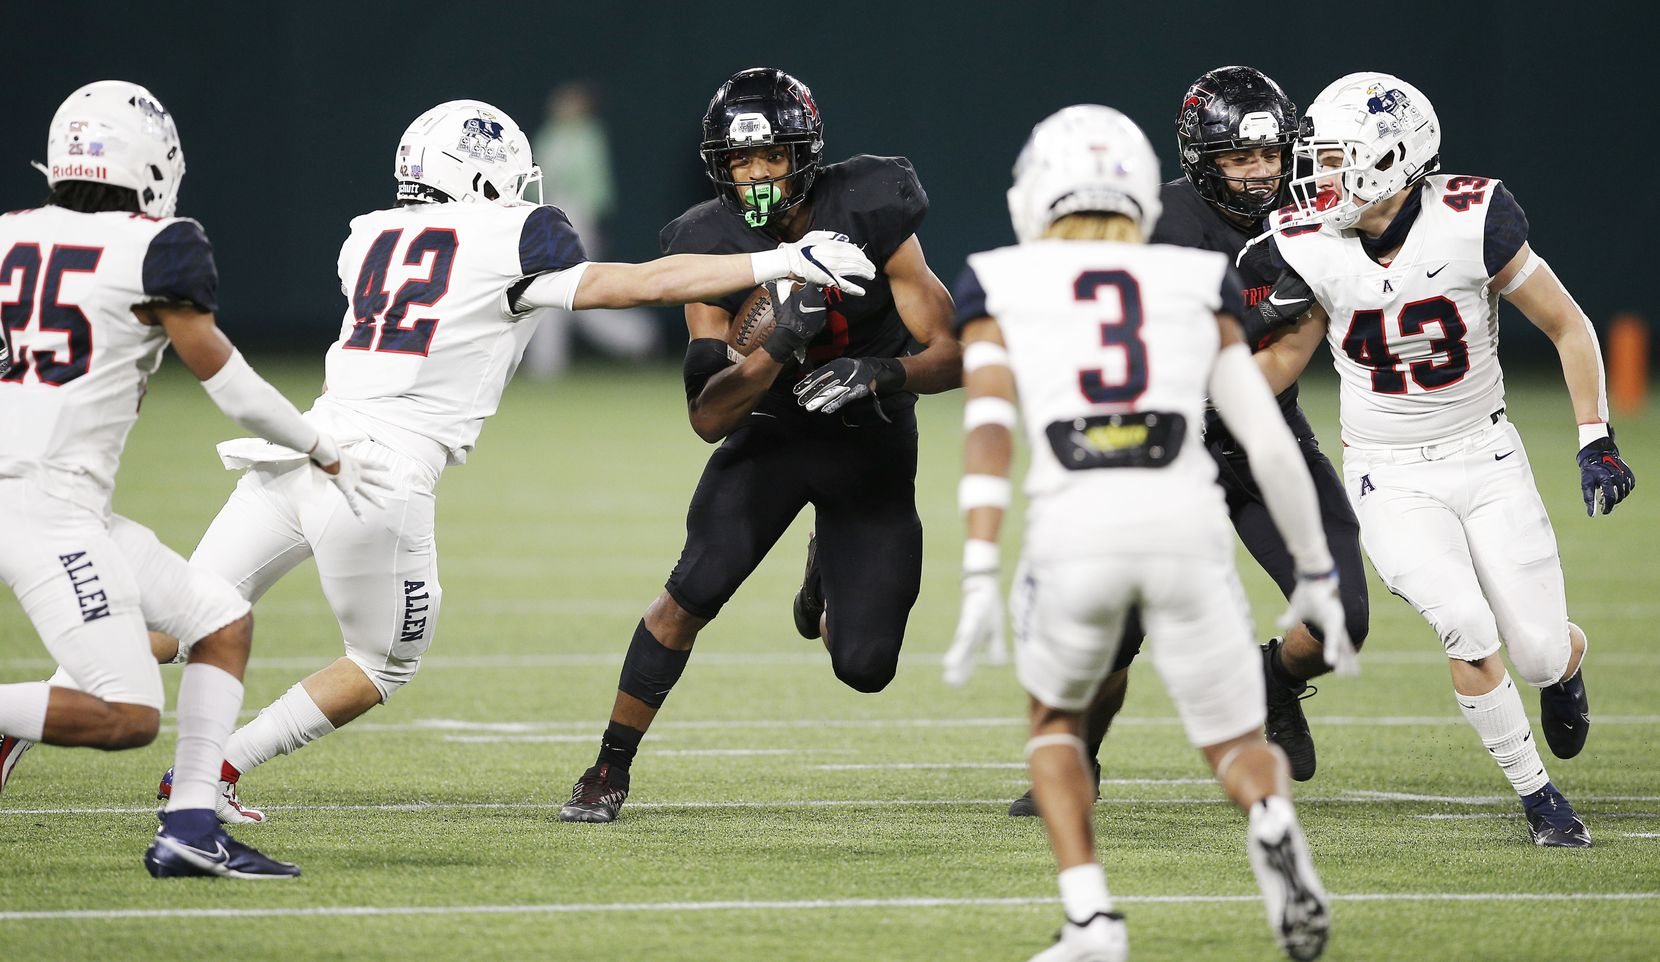 Euless Trinity junior running back Ollie Gordon, center, looks for room against the Allen defense during the first half of a high school Class 6A Division I Region I semifinal football game at Globe Life Park in Arlington, Saturday, December 26, 2020. (Brandon Wade/Special Contributor)